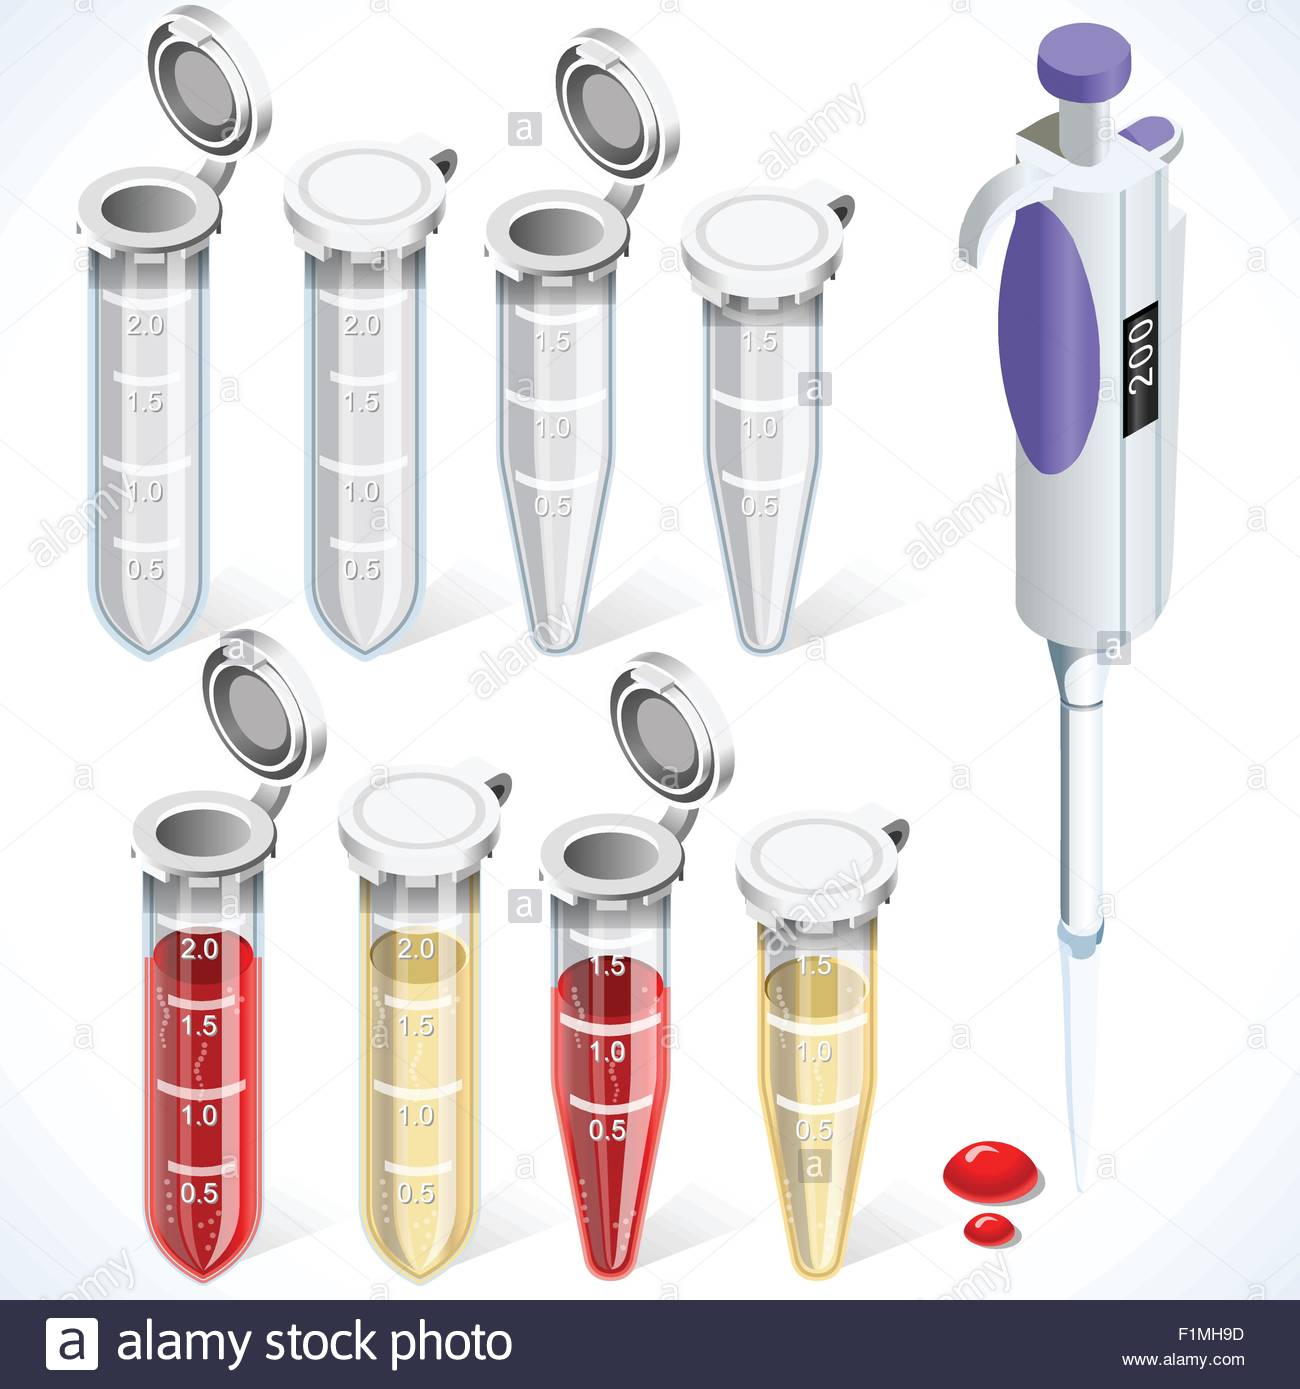 Eppendorf Sample Stock Vector Images - Alamy